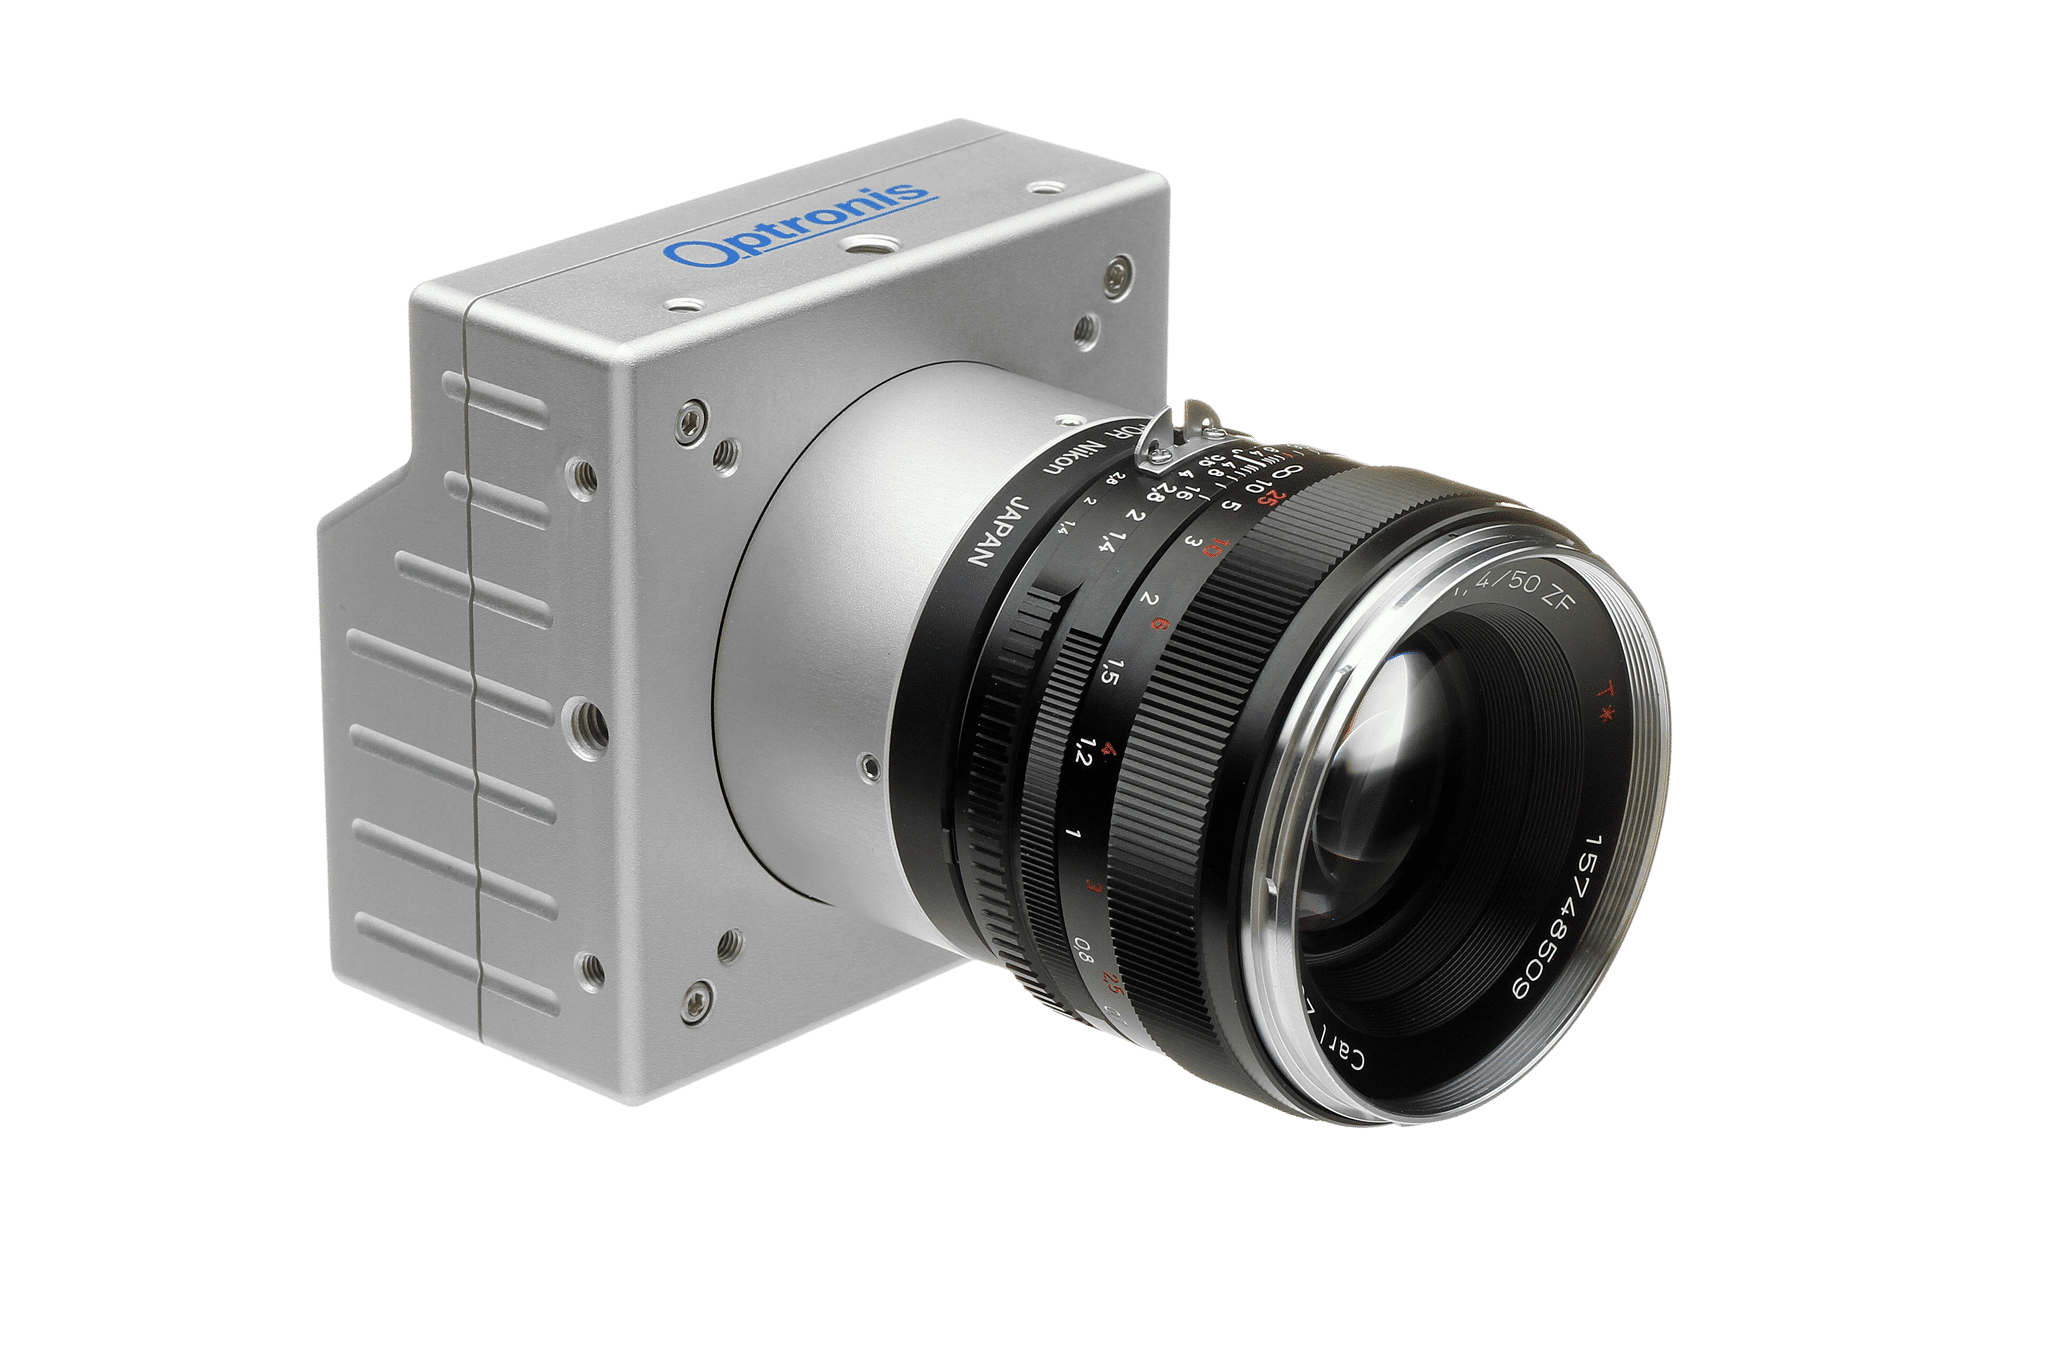 optronis-camperform70-highspeed-machine-vision-camera_21